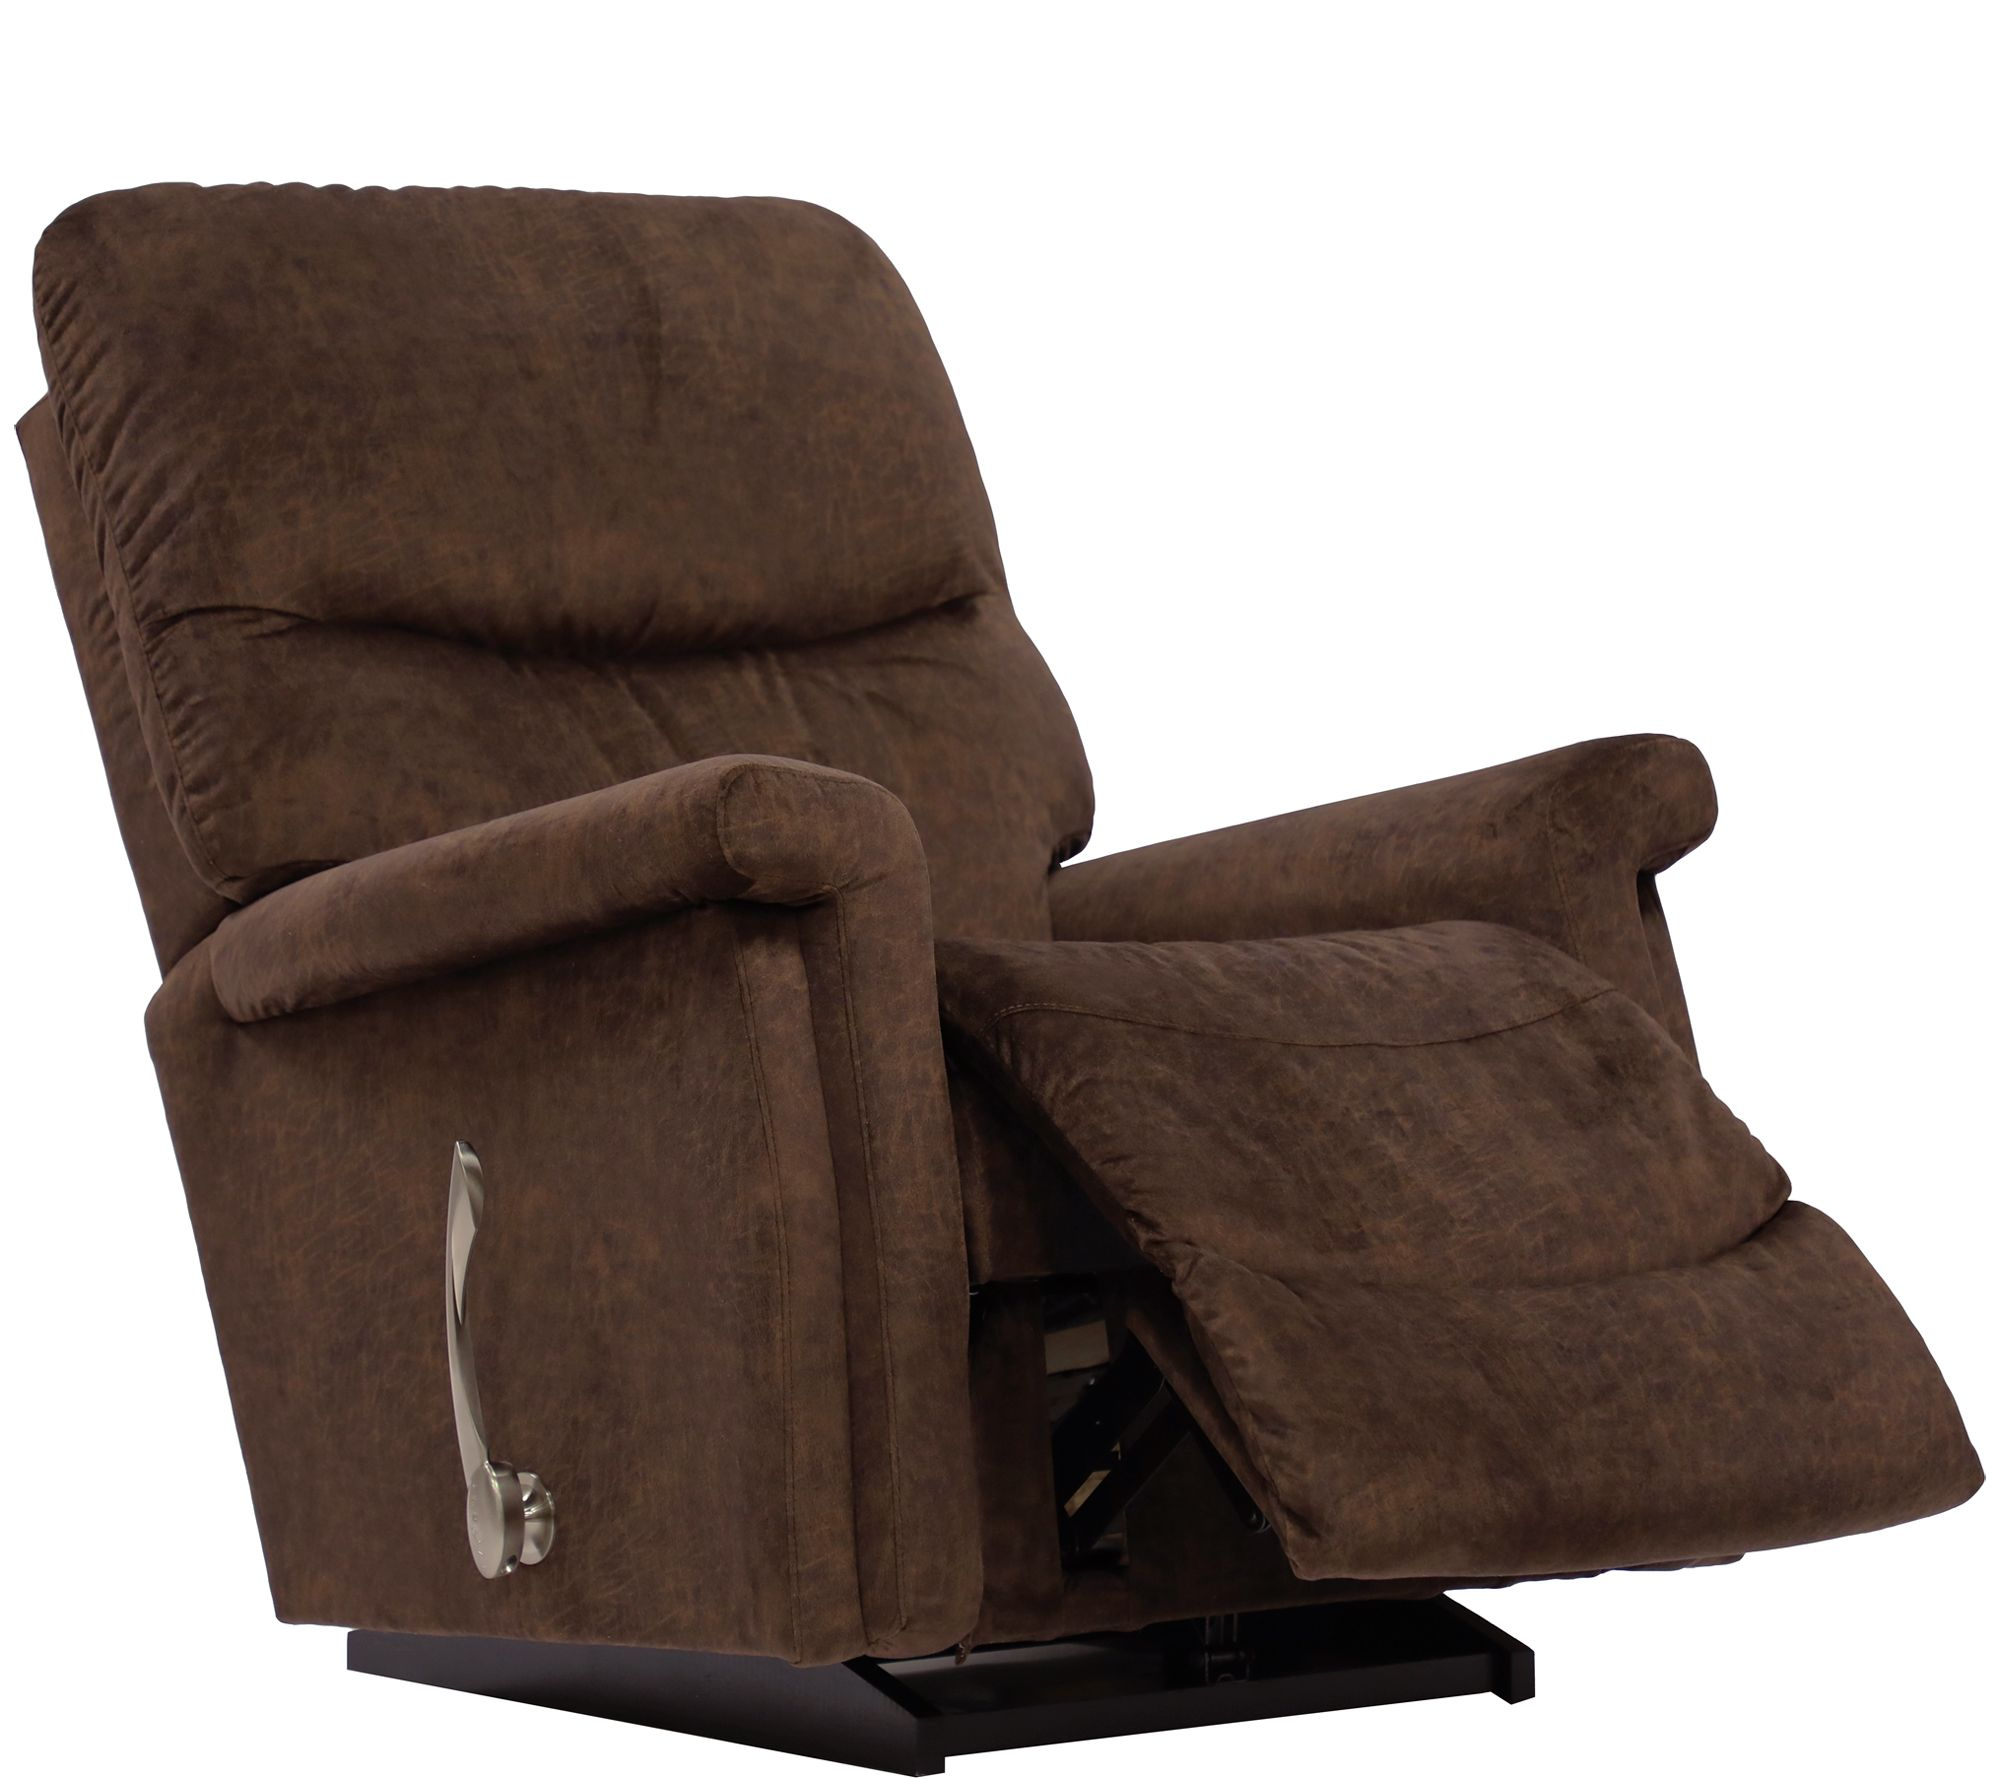 Super La Z Boy Manual Baylor Recliner Qvc Com Caraccident5 Cool Chair Designs And Ideas Caraccident5Info